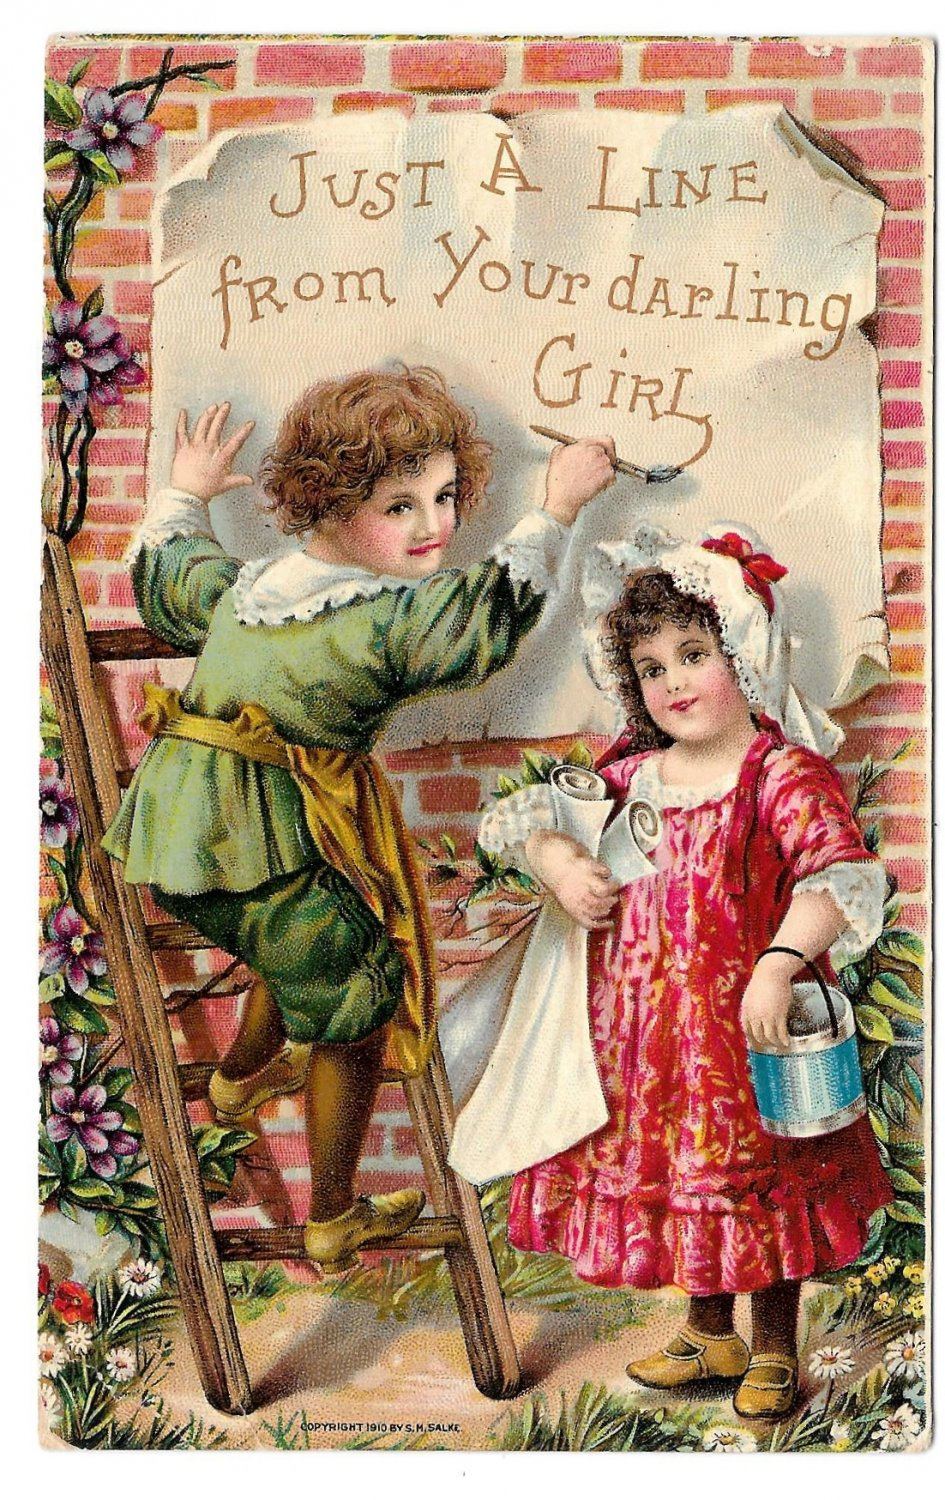 Children Painting Wall Just a Line From Your Darling Girl Vintage Embossed 1917 Postcard